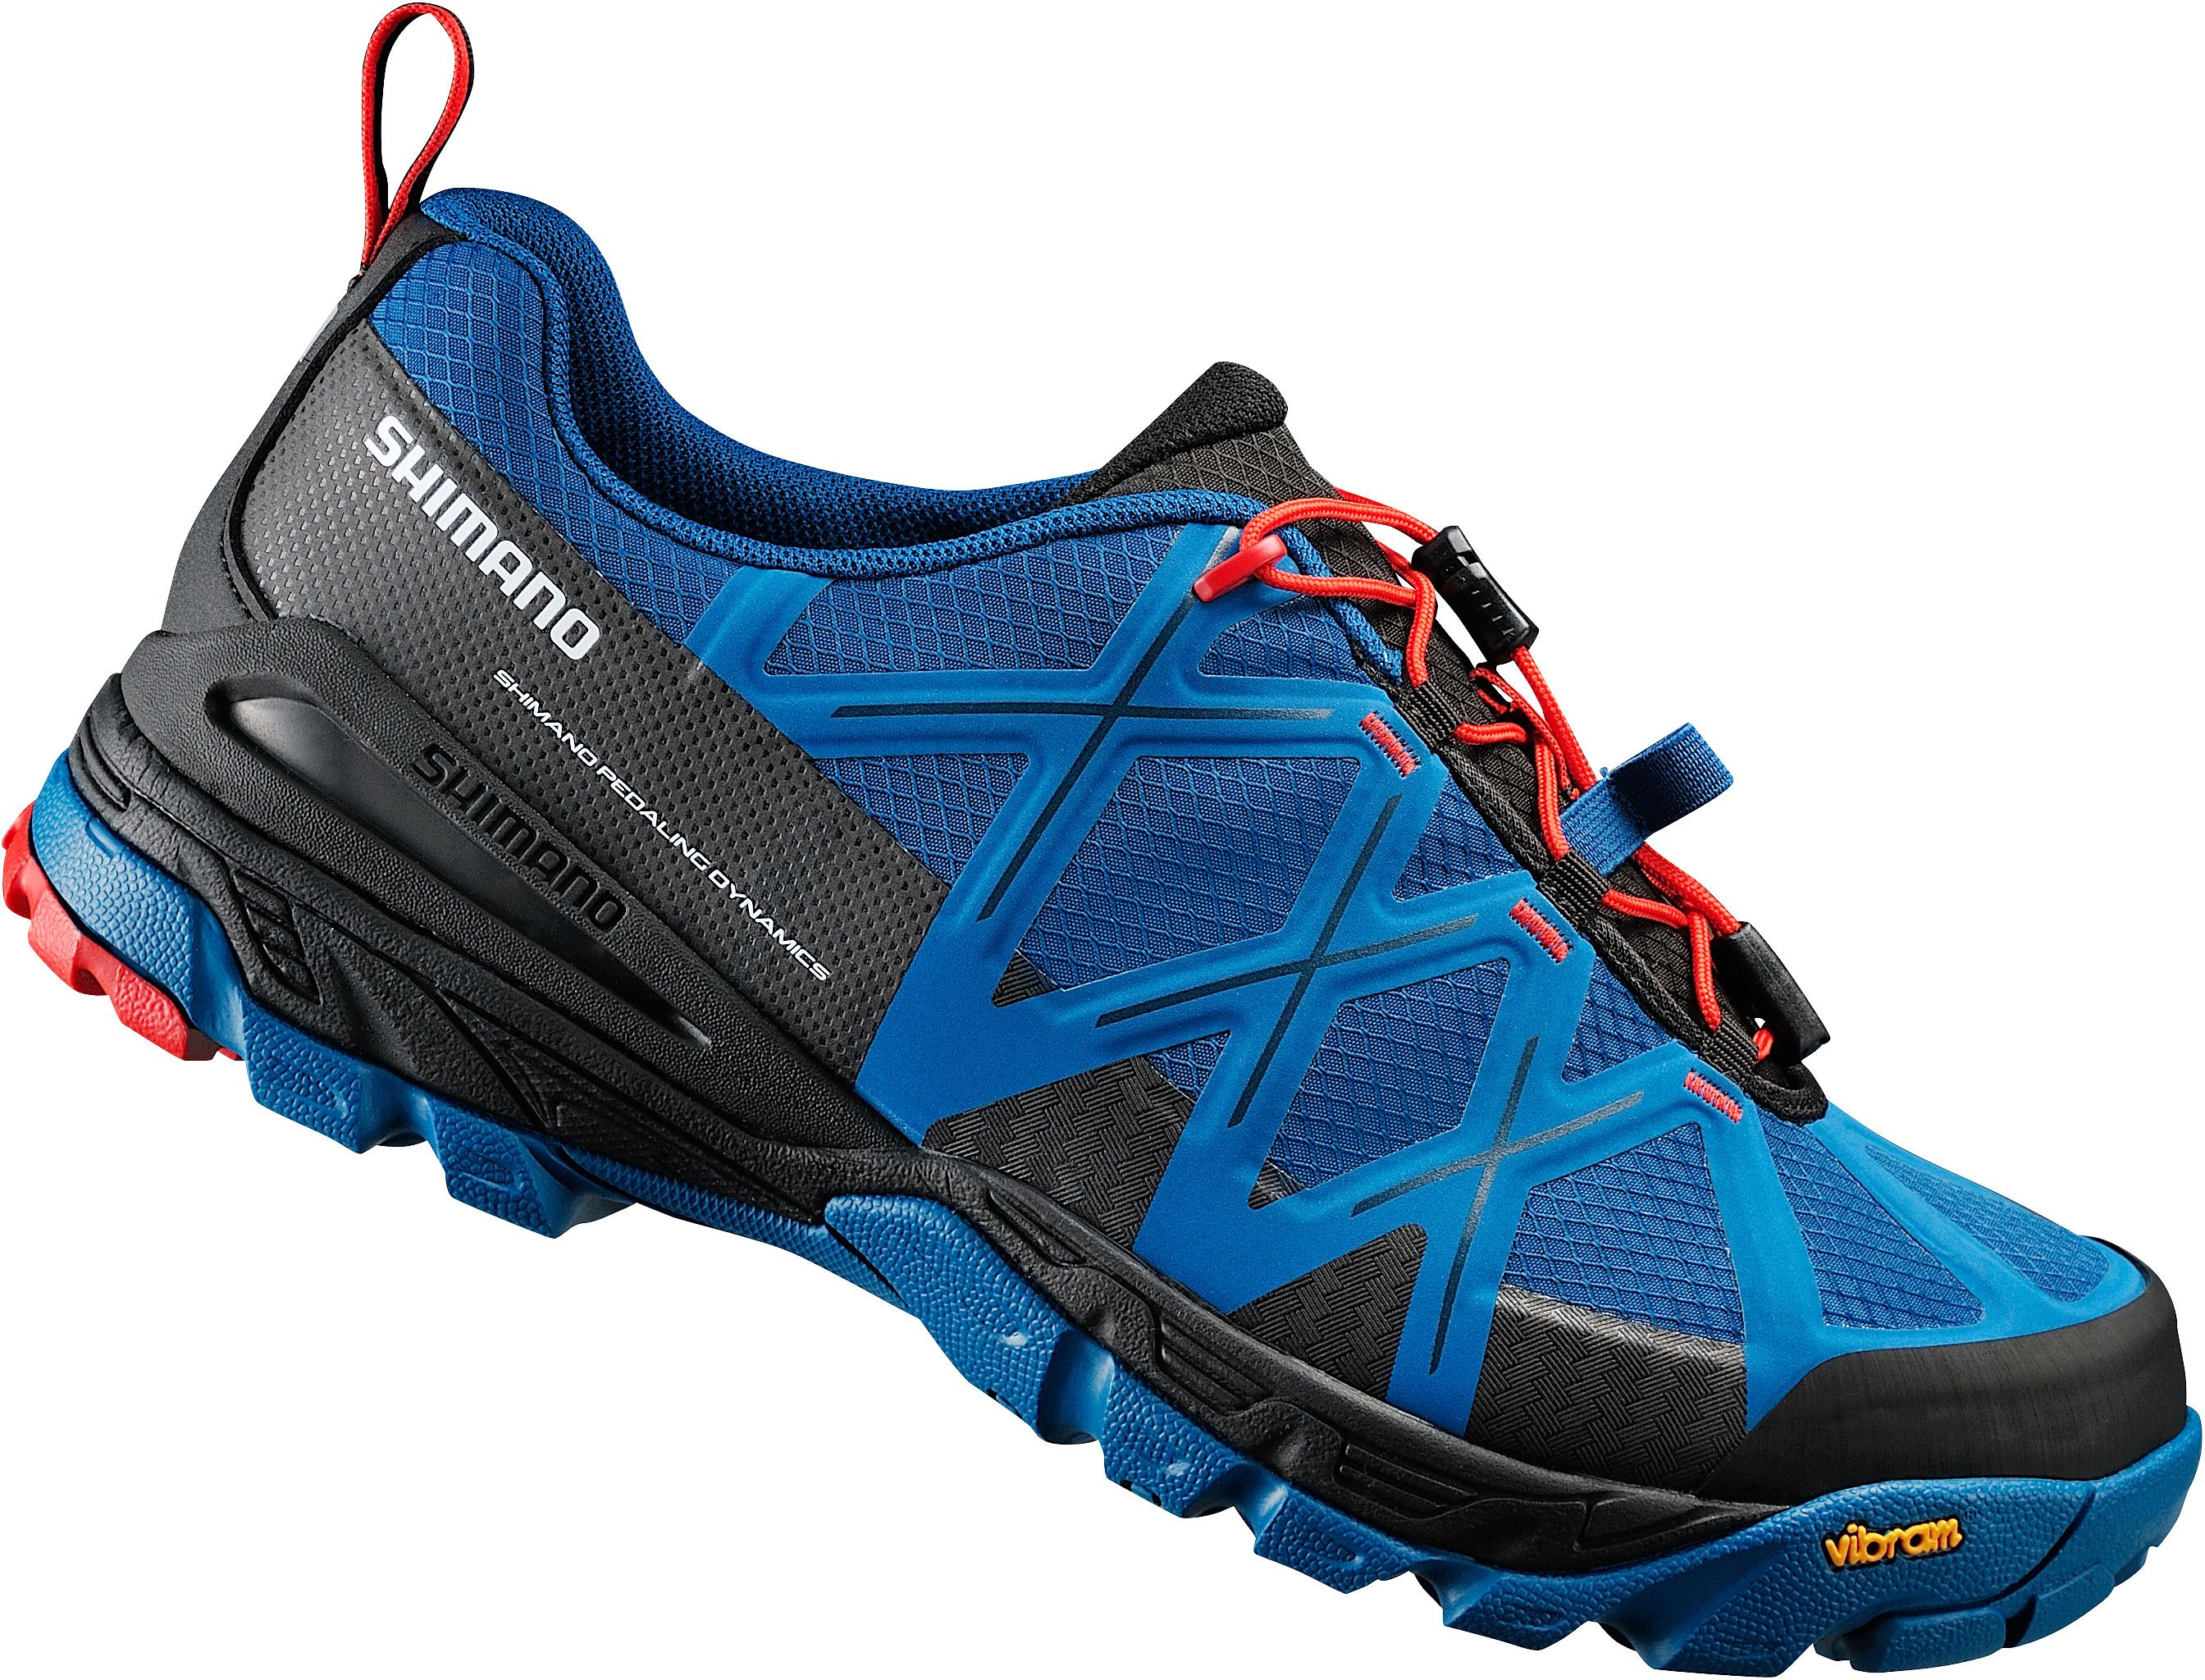 SHIMANO TRAIL / LEISURE SHOES SHOE SPD MTB MT54 BE/BE SIZE 48 BLUE/BLUE BMT54B48